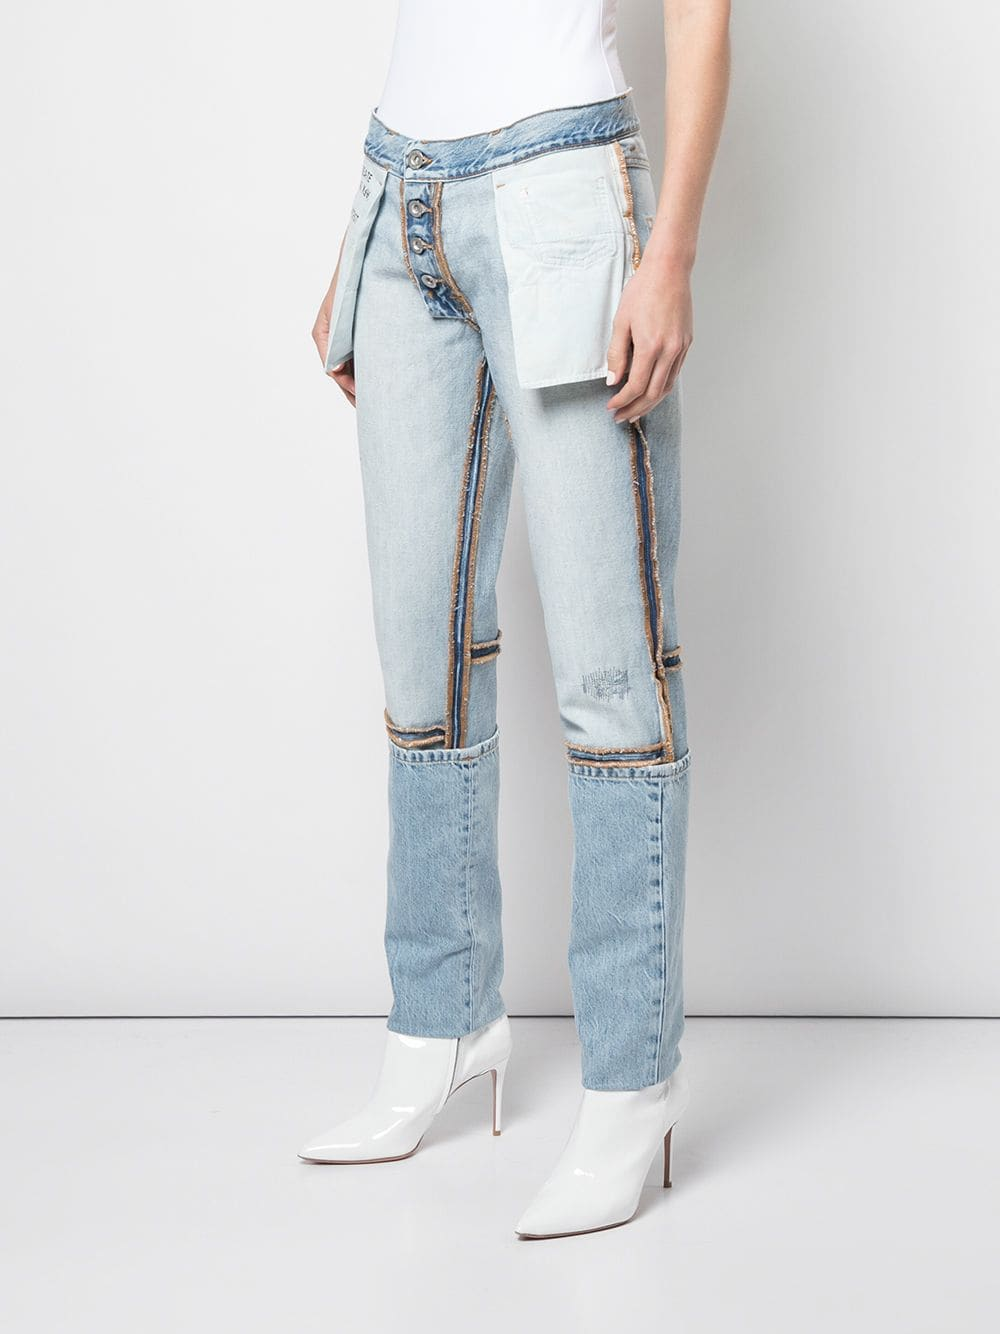 UNRAVEL PROJECT WOMEN STONE 10 DOUBLE REV BOY SKINNY DENIM